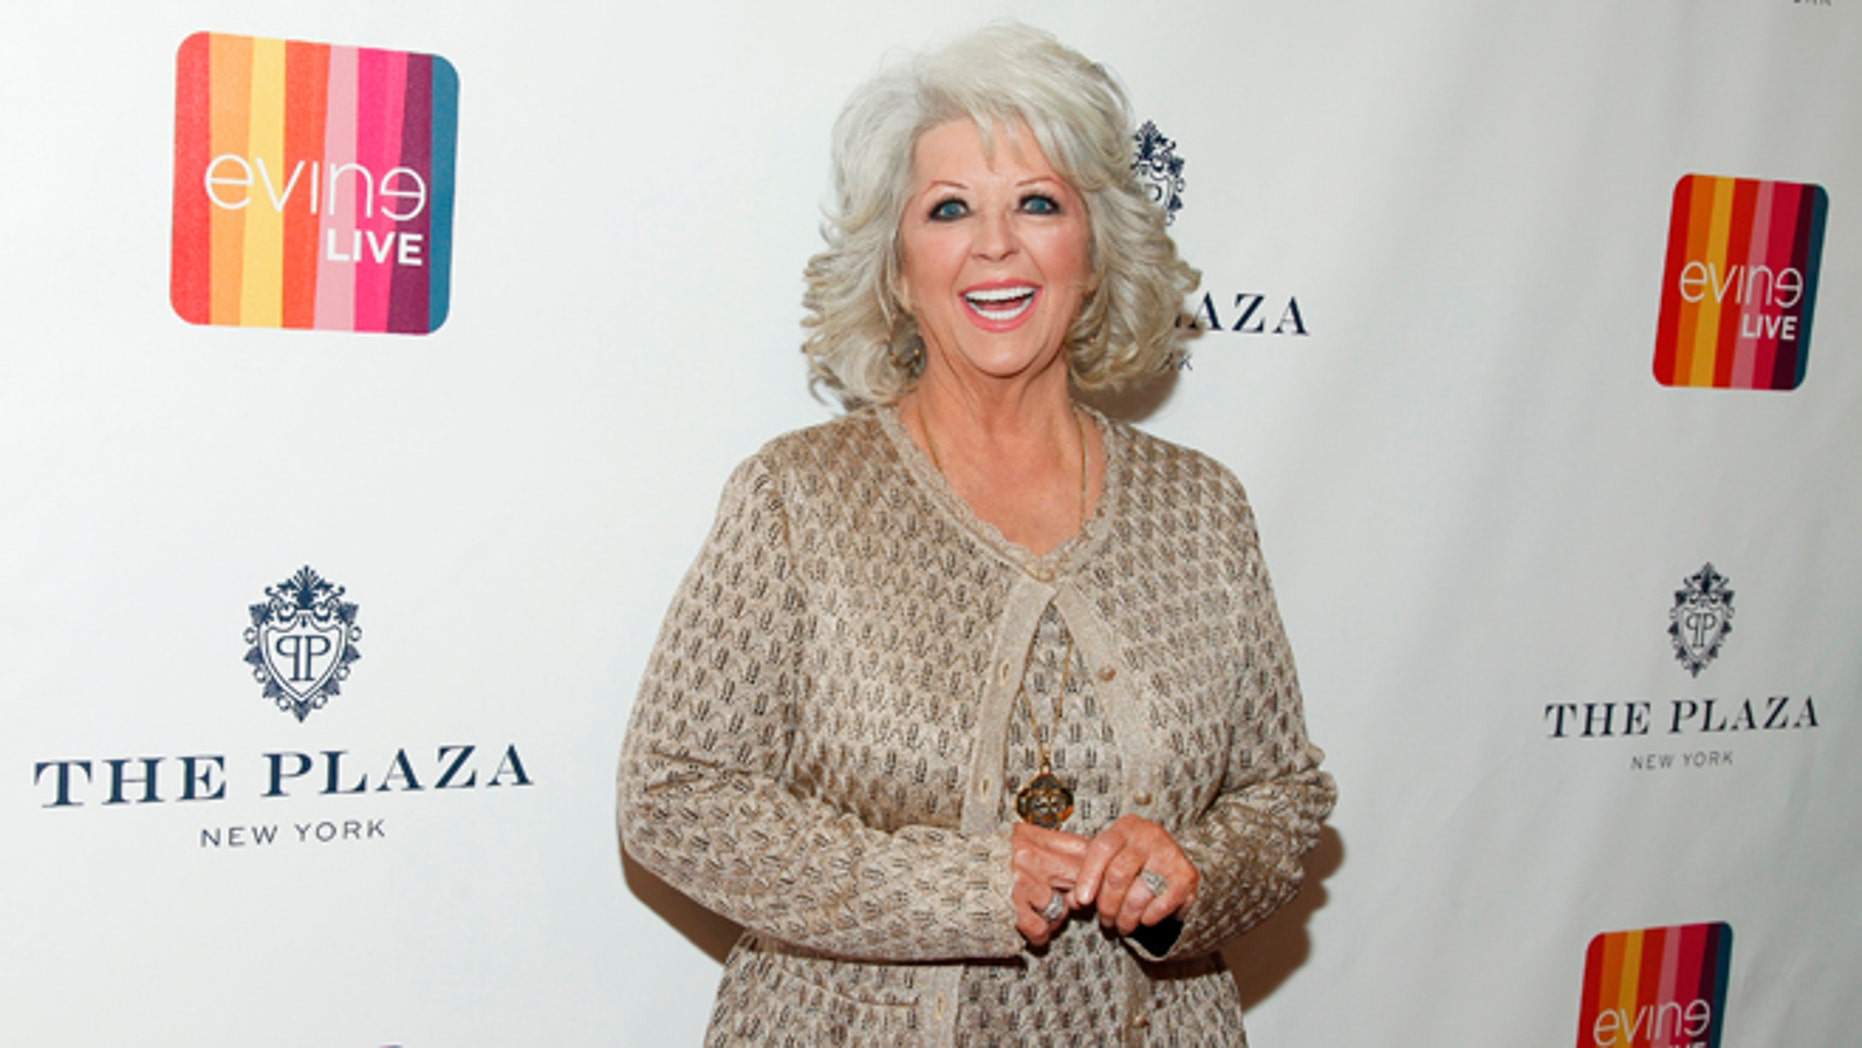 "FILE - In this Feb. 13, 2015 file photo, Paula Deen attends the EVINE Live launch event at The Todd English Food Hall at The Plaza in New York. A spokesman for Deen says she didn't post a 2011 Halloween costume photo on her Twitter account showing her son Bobby in dark makeup as ""I Love Lucy"" character Ricky Ricardo. Deen spokesman Jaret Keller said Tuesday, July 7, 2015, that a social media manager posted the photo taken in connection with Deen's former Food Network show.   (Photo by Andy Kropa/Invision/AP, File)"